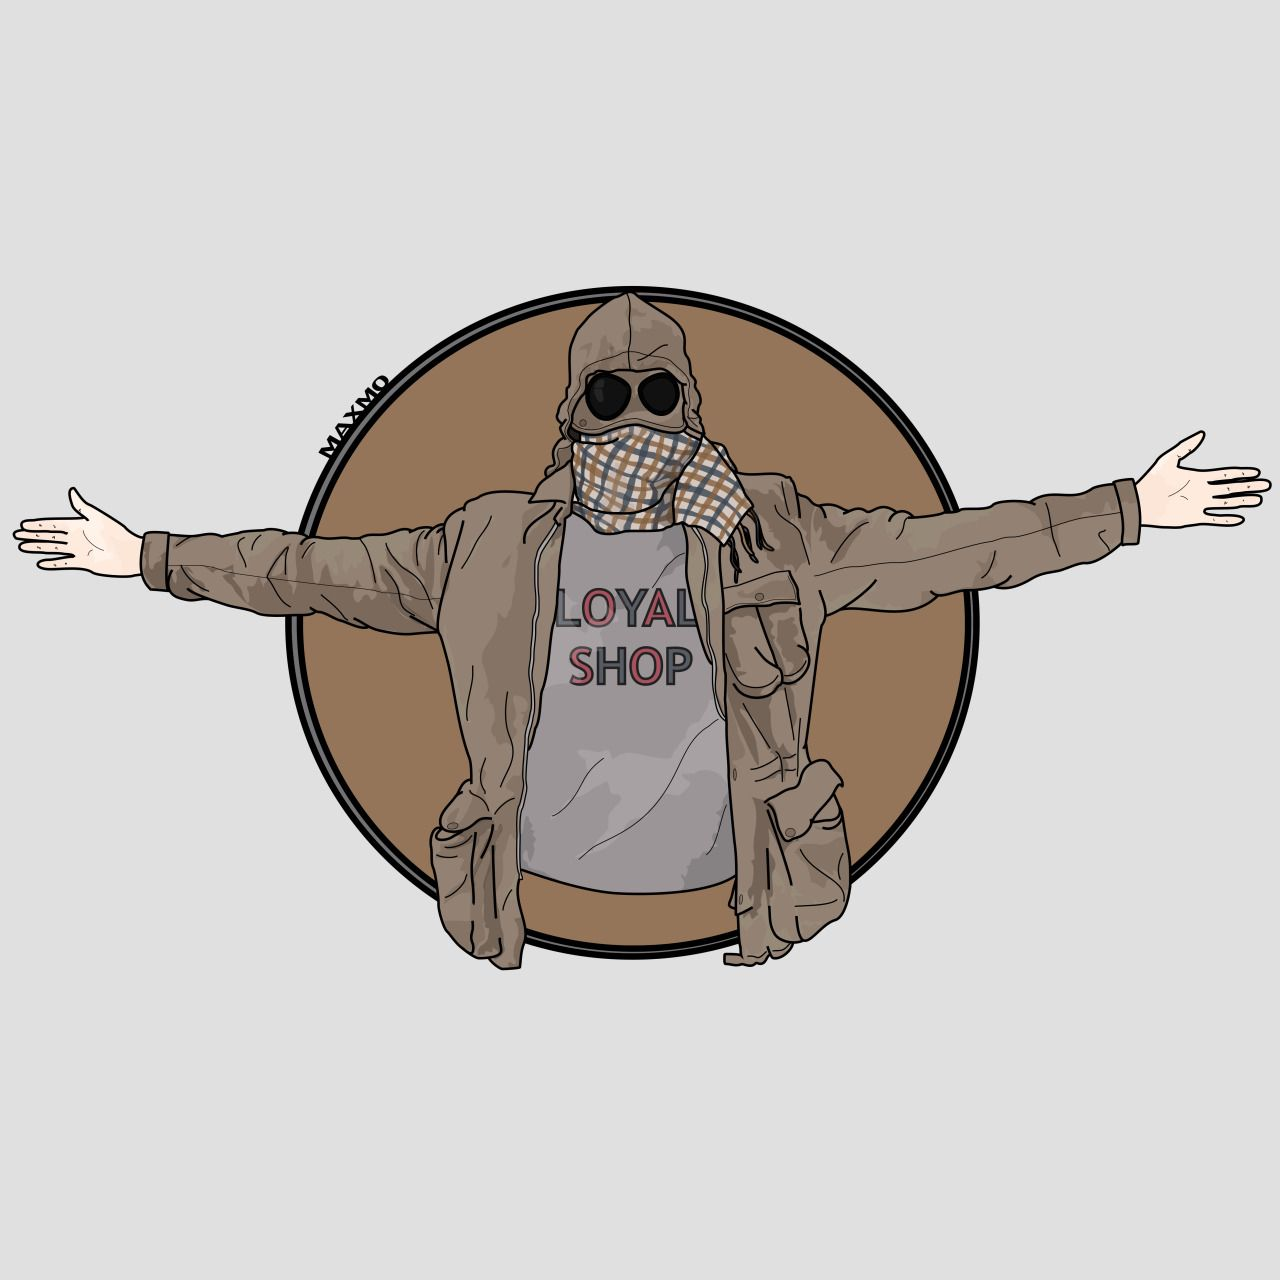 Iconic Casuals Casual Art Casual Styles Ultras Football Football Casuals Football Fans